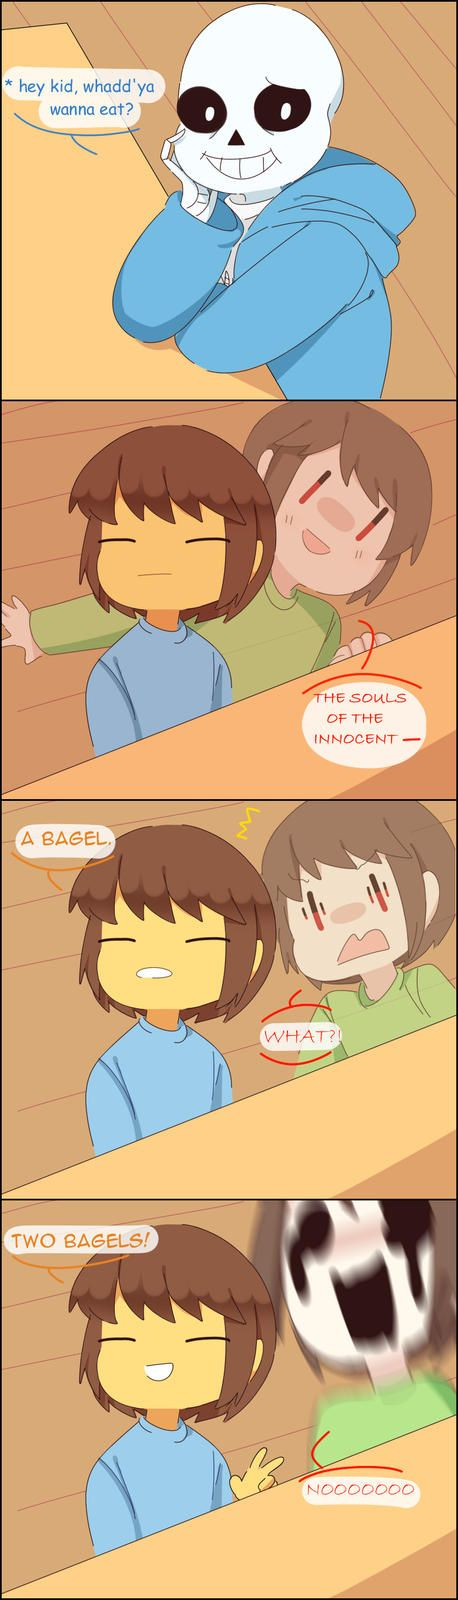 The child has eaten the bagel. He will never belong to us now. Chara and Frisk with Sans Undertale